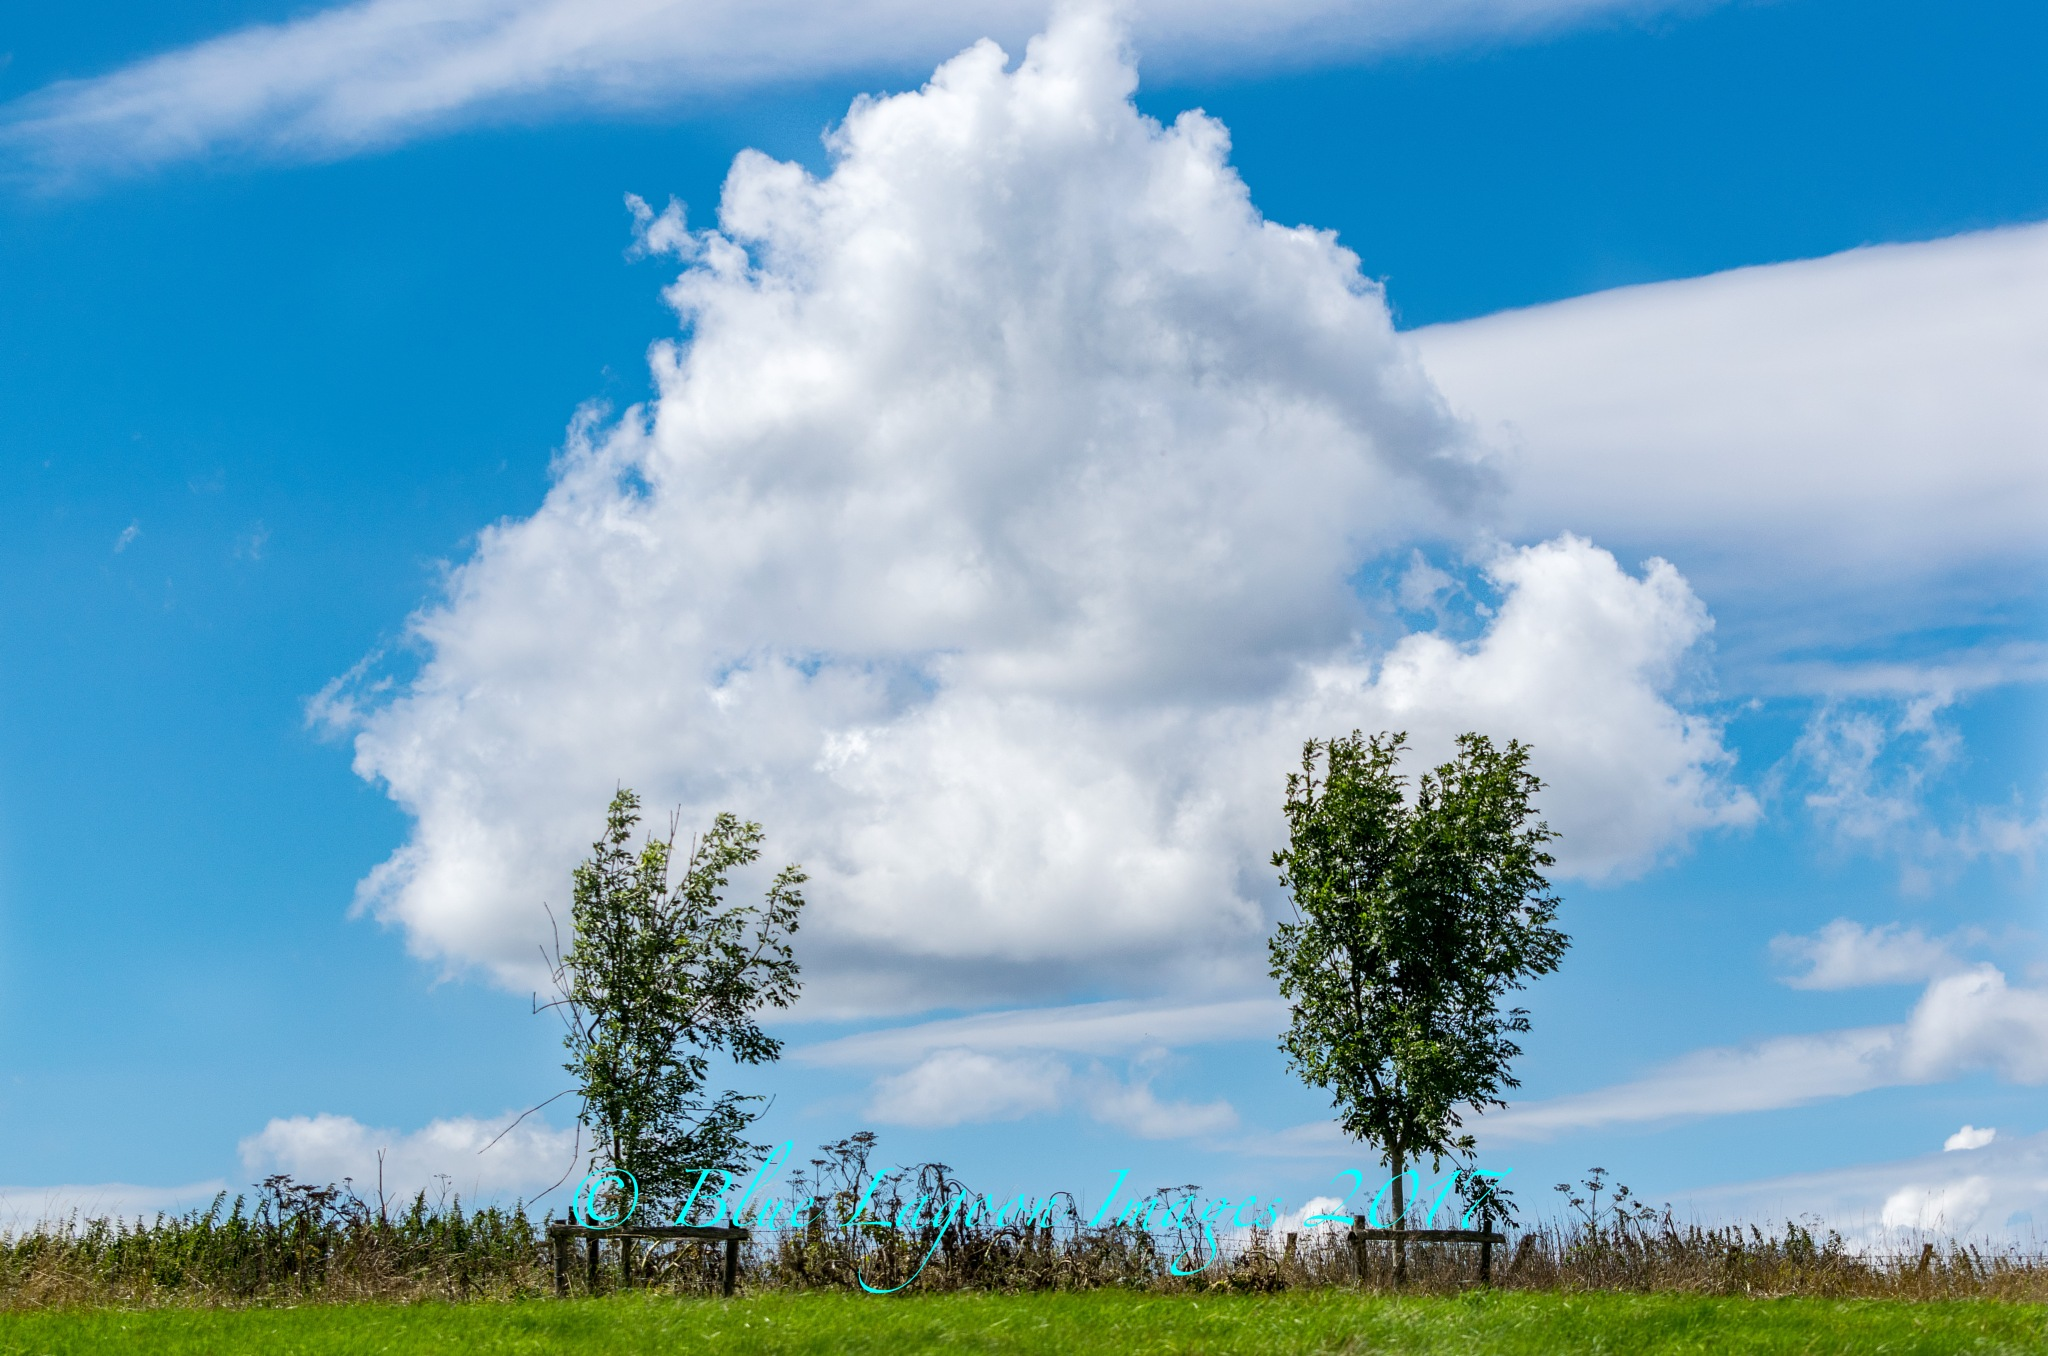 Cloud between two trees by Blue Lagoon Images